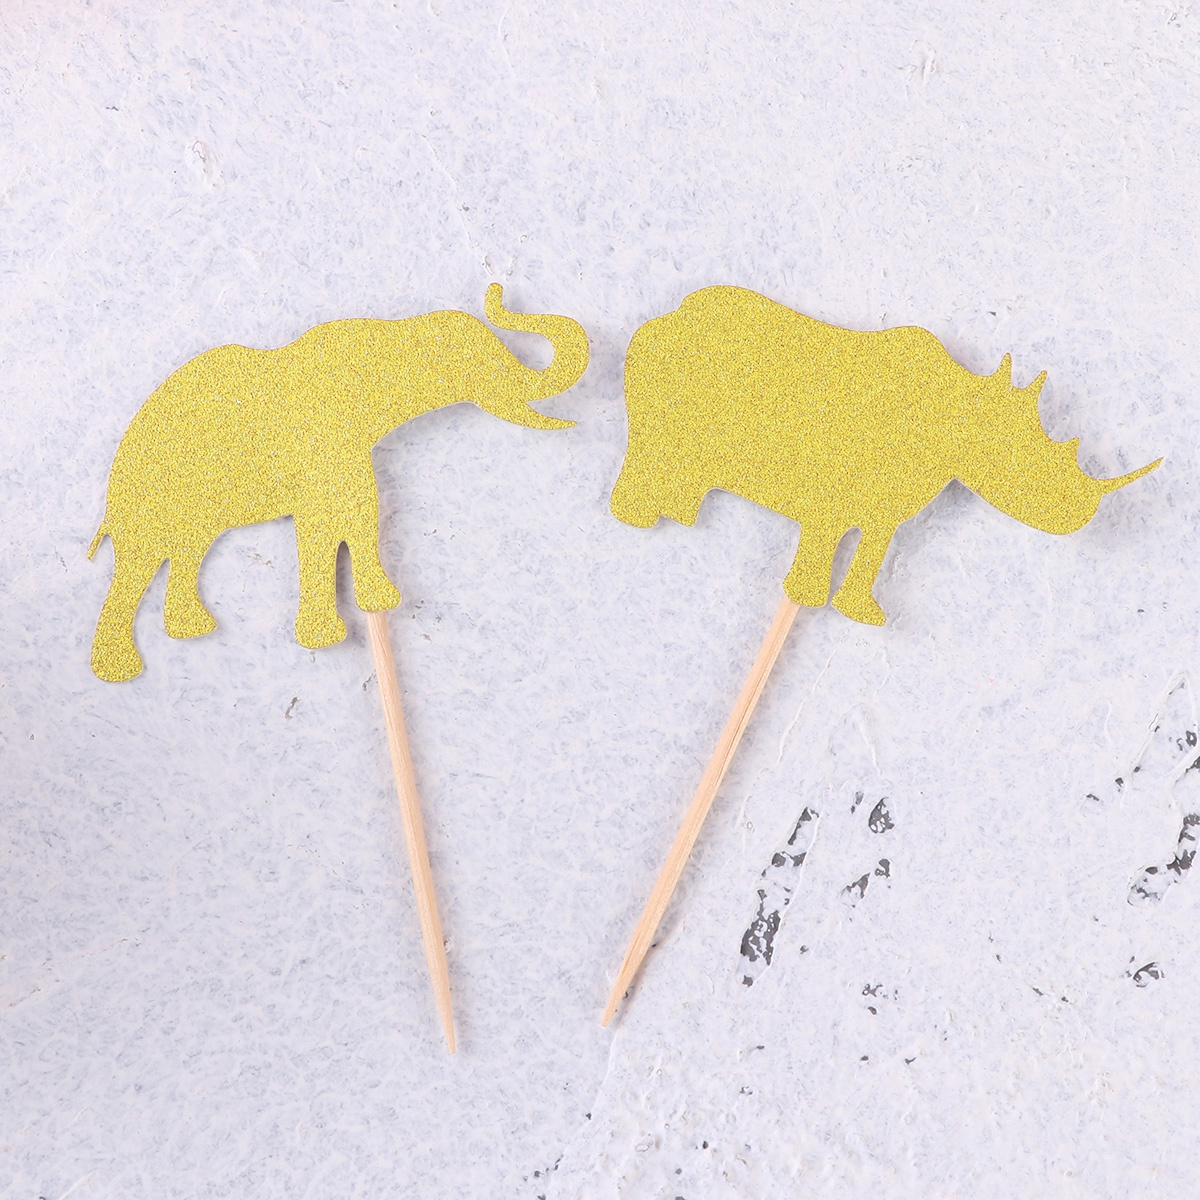 Image 5 - 10pcs Cake Topper Glitter Jungle Animals Golden Cupcake Toppers Dessert Topper Insert Card Fruit Topper For Birthday-in Cake Decorating Supplies from Home & Garden